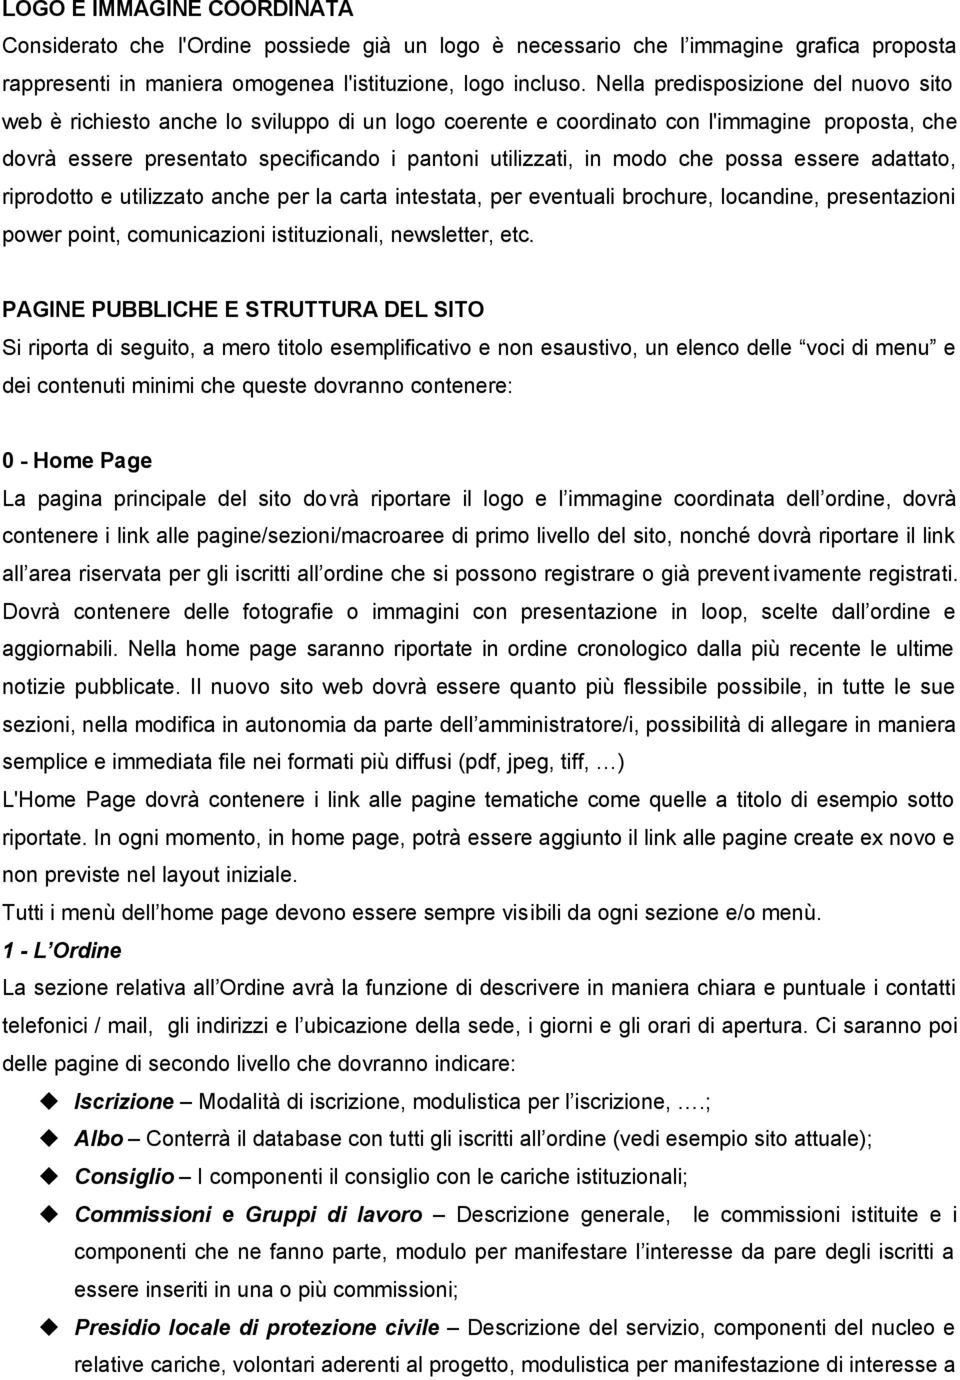 che possa essere adattato, riprodotto e utilizzato anche per la carta intestata, per eventuali brochure, locandine, presentazioni power point, comunicazioni istituzionali, newsletter, etc.